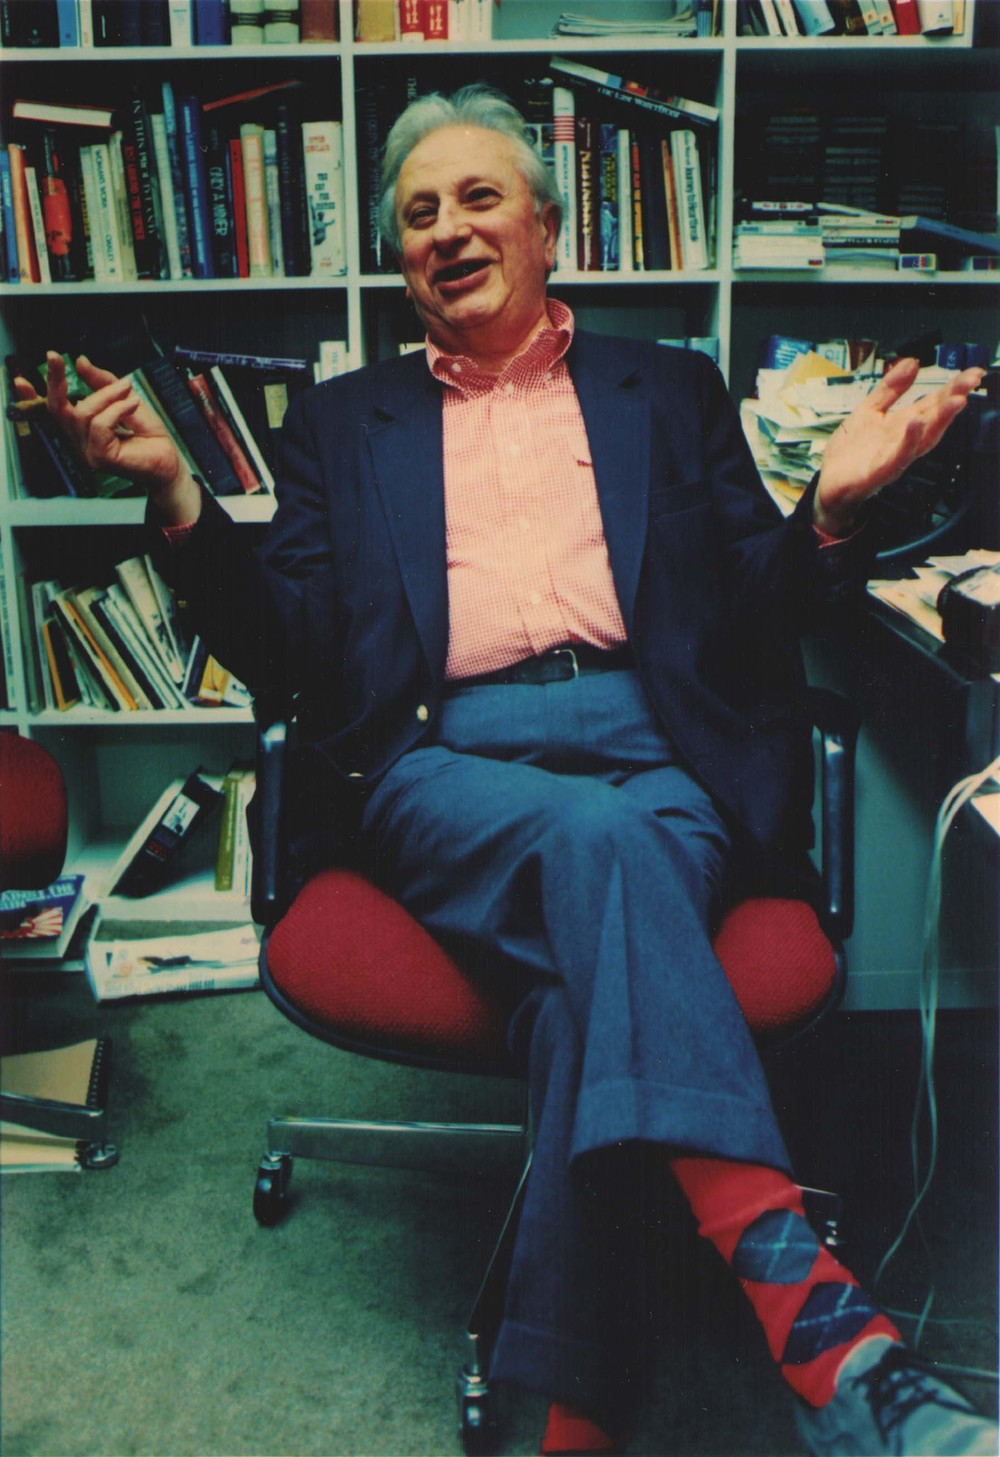 Studs Terkel in his office